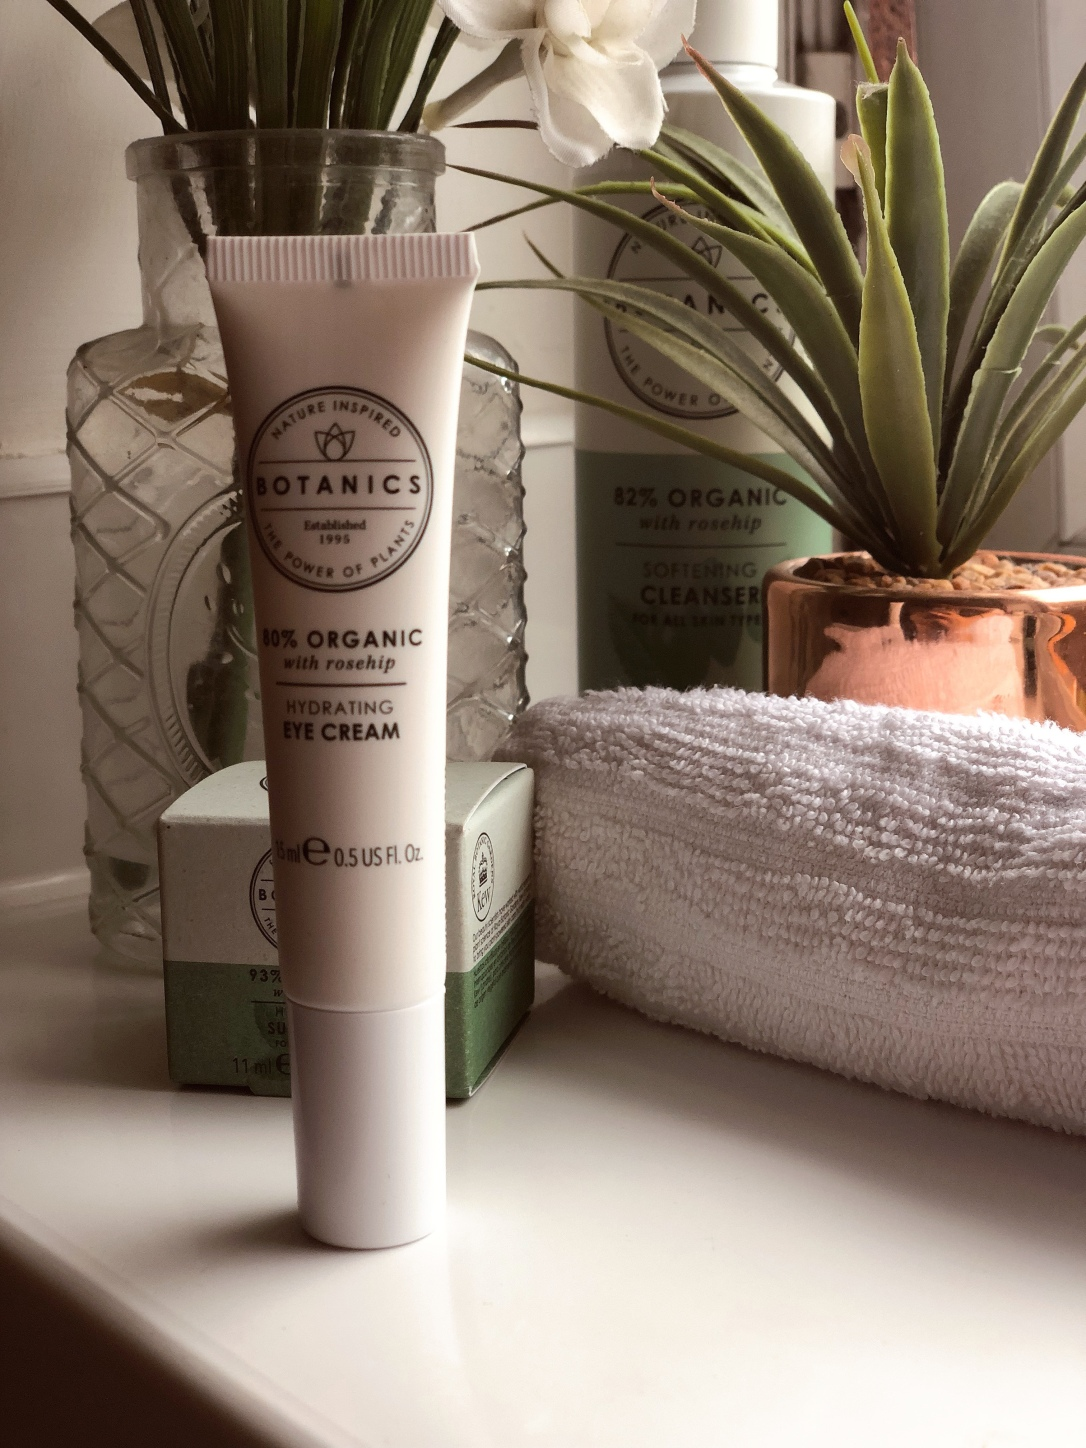 alchemy by amy uk Organic September -Boots Botanics Organic Affordable Budget Skincare Haul & Review non toxic low chemical eye cream cleanser oil balm